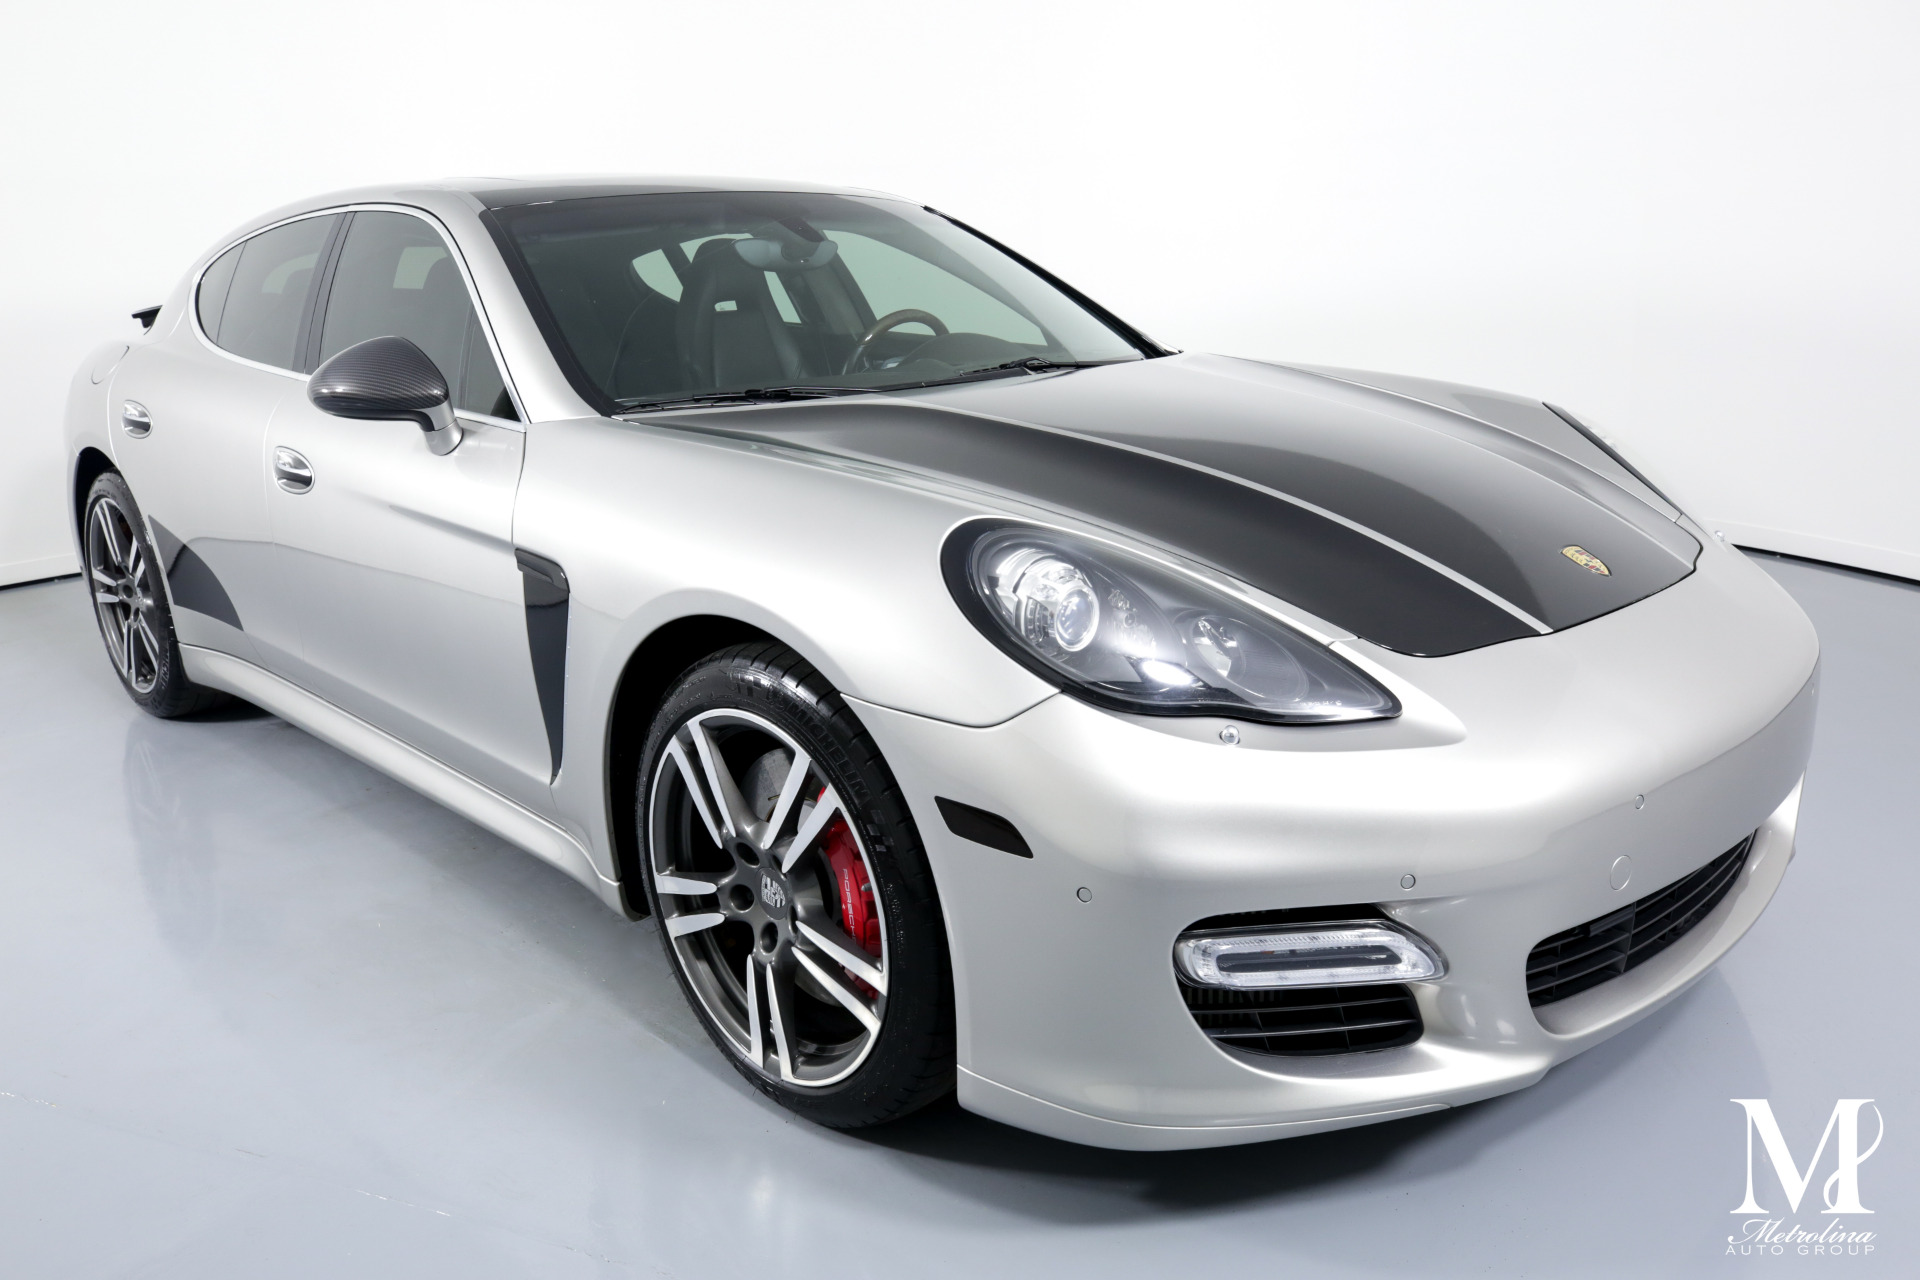 Used 2012 Porsche Panamera Turbo for sale $51,996 at Metrolina Auto Group in Charlotte NC 28217 - 2